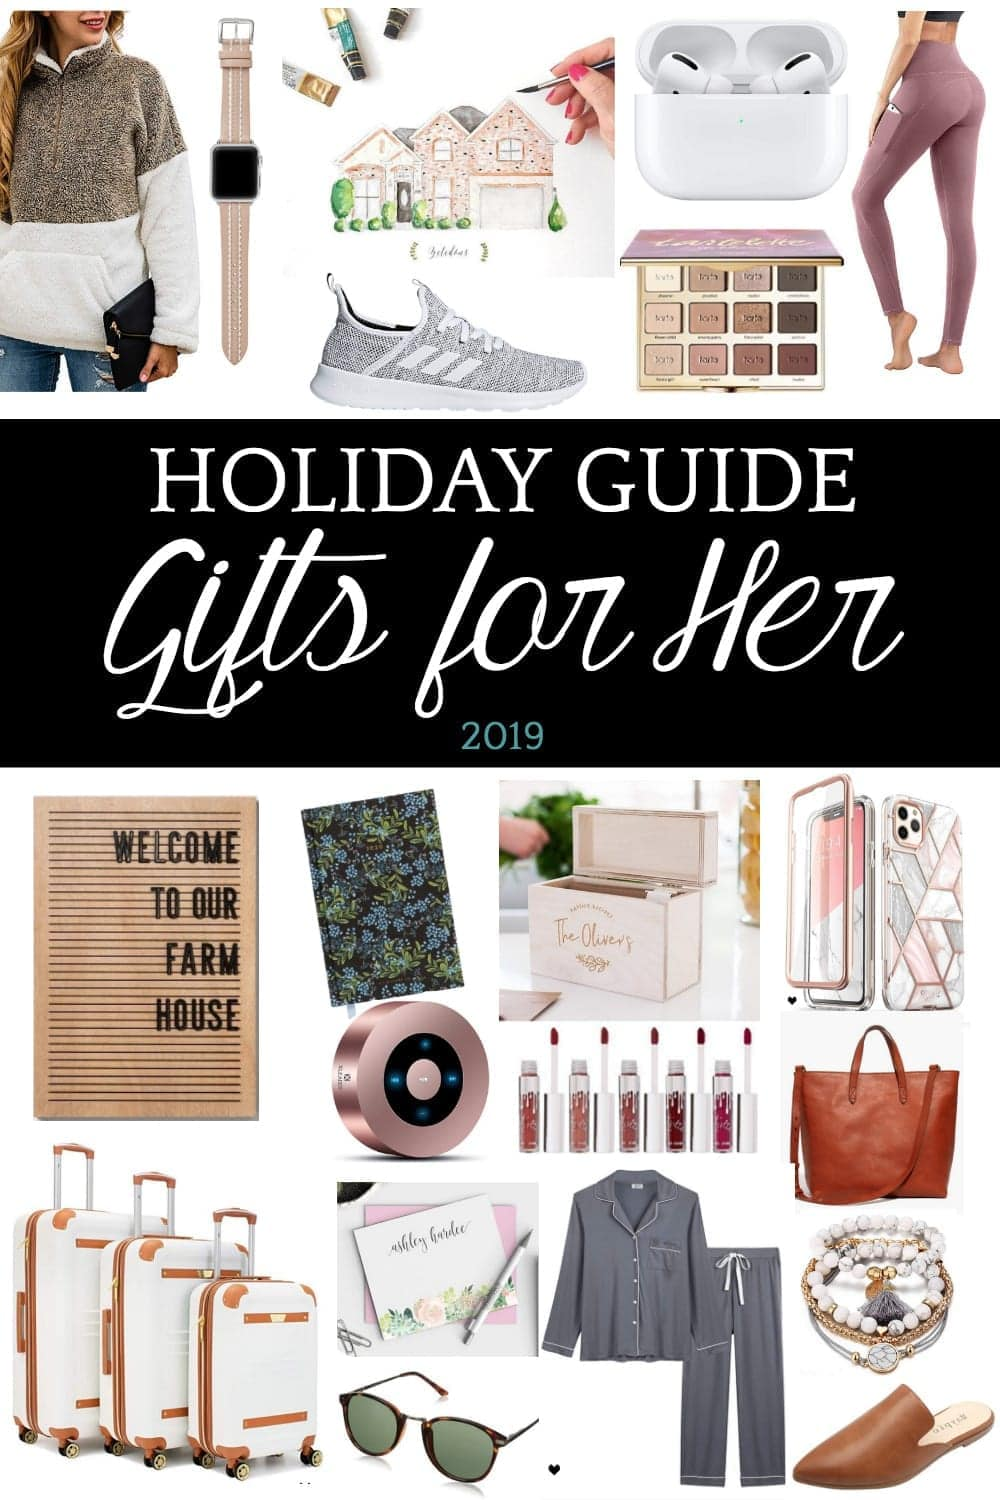 Holiday Gift Guide for Her 2019 | 50 of the best gifts for her for 2019 with researched top-rated favorites in beauty, fashion, tech, self-care, lifestyle, and personalized sentimental gifts.